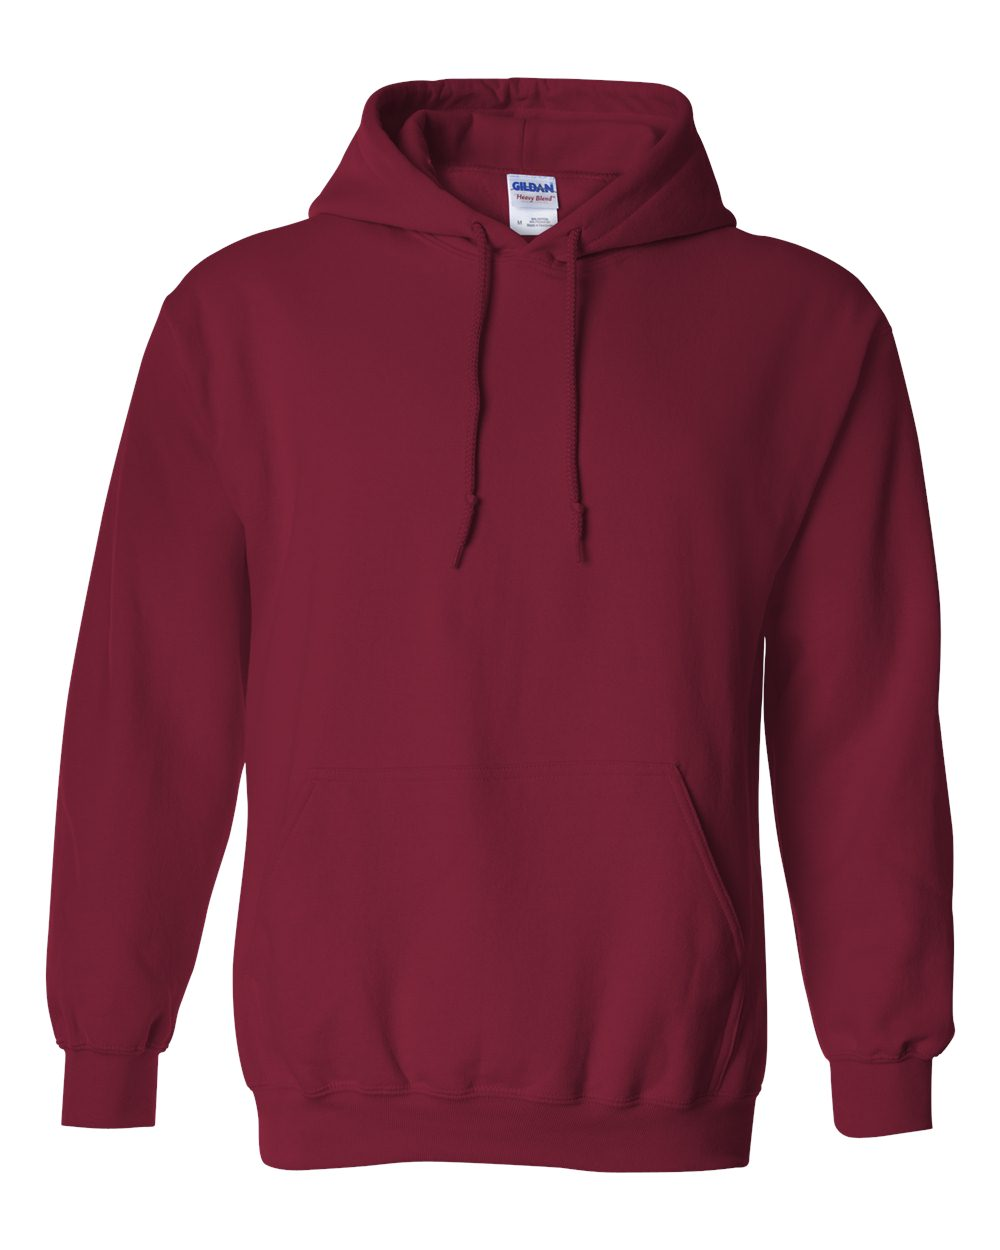 Heavy Blend Hooded Sweatshirt – 18500